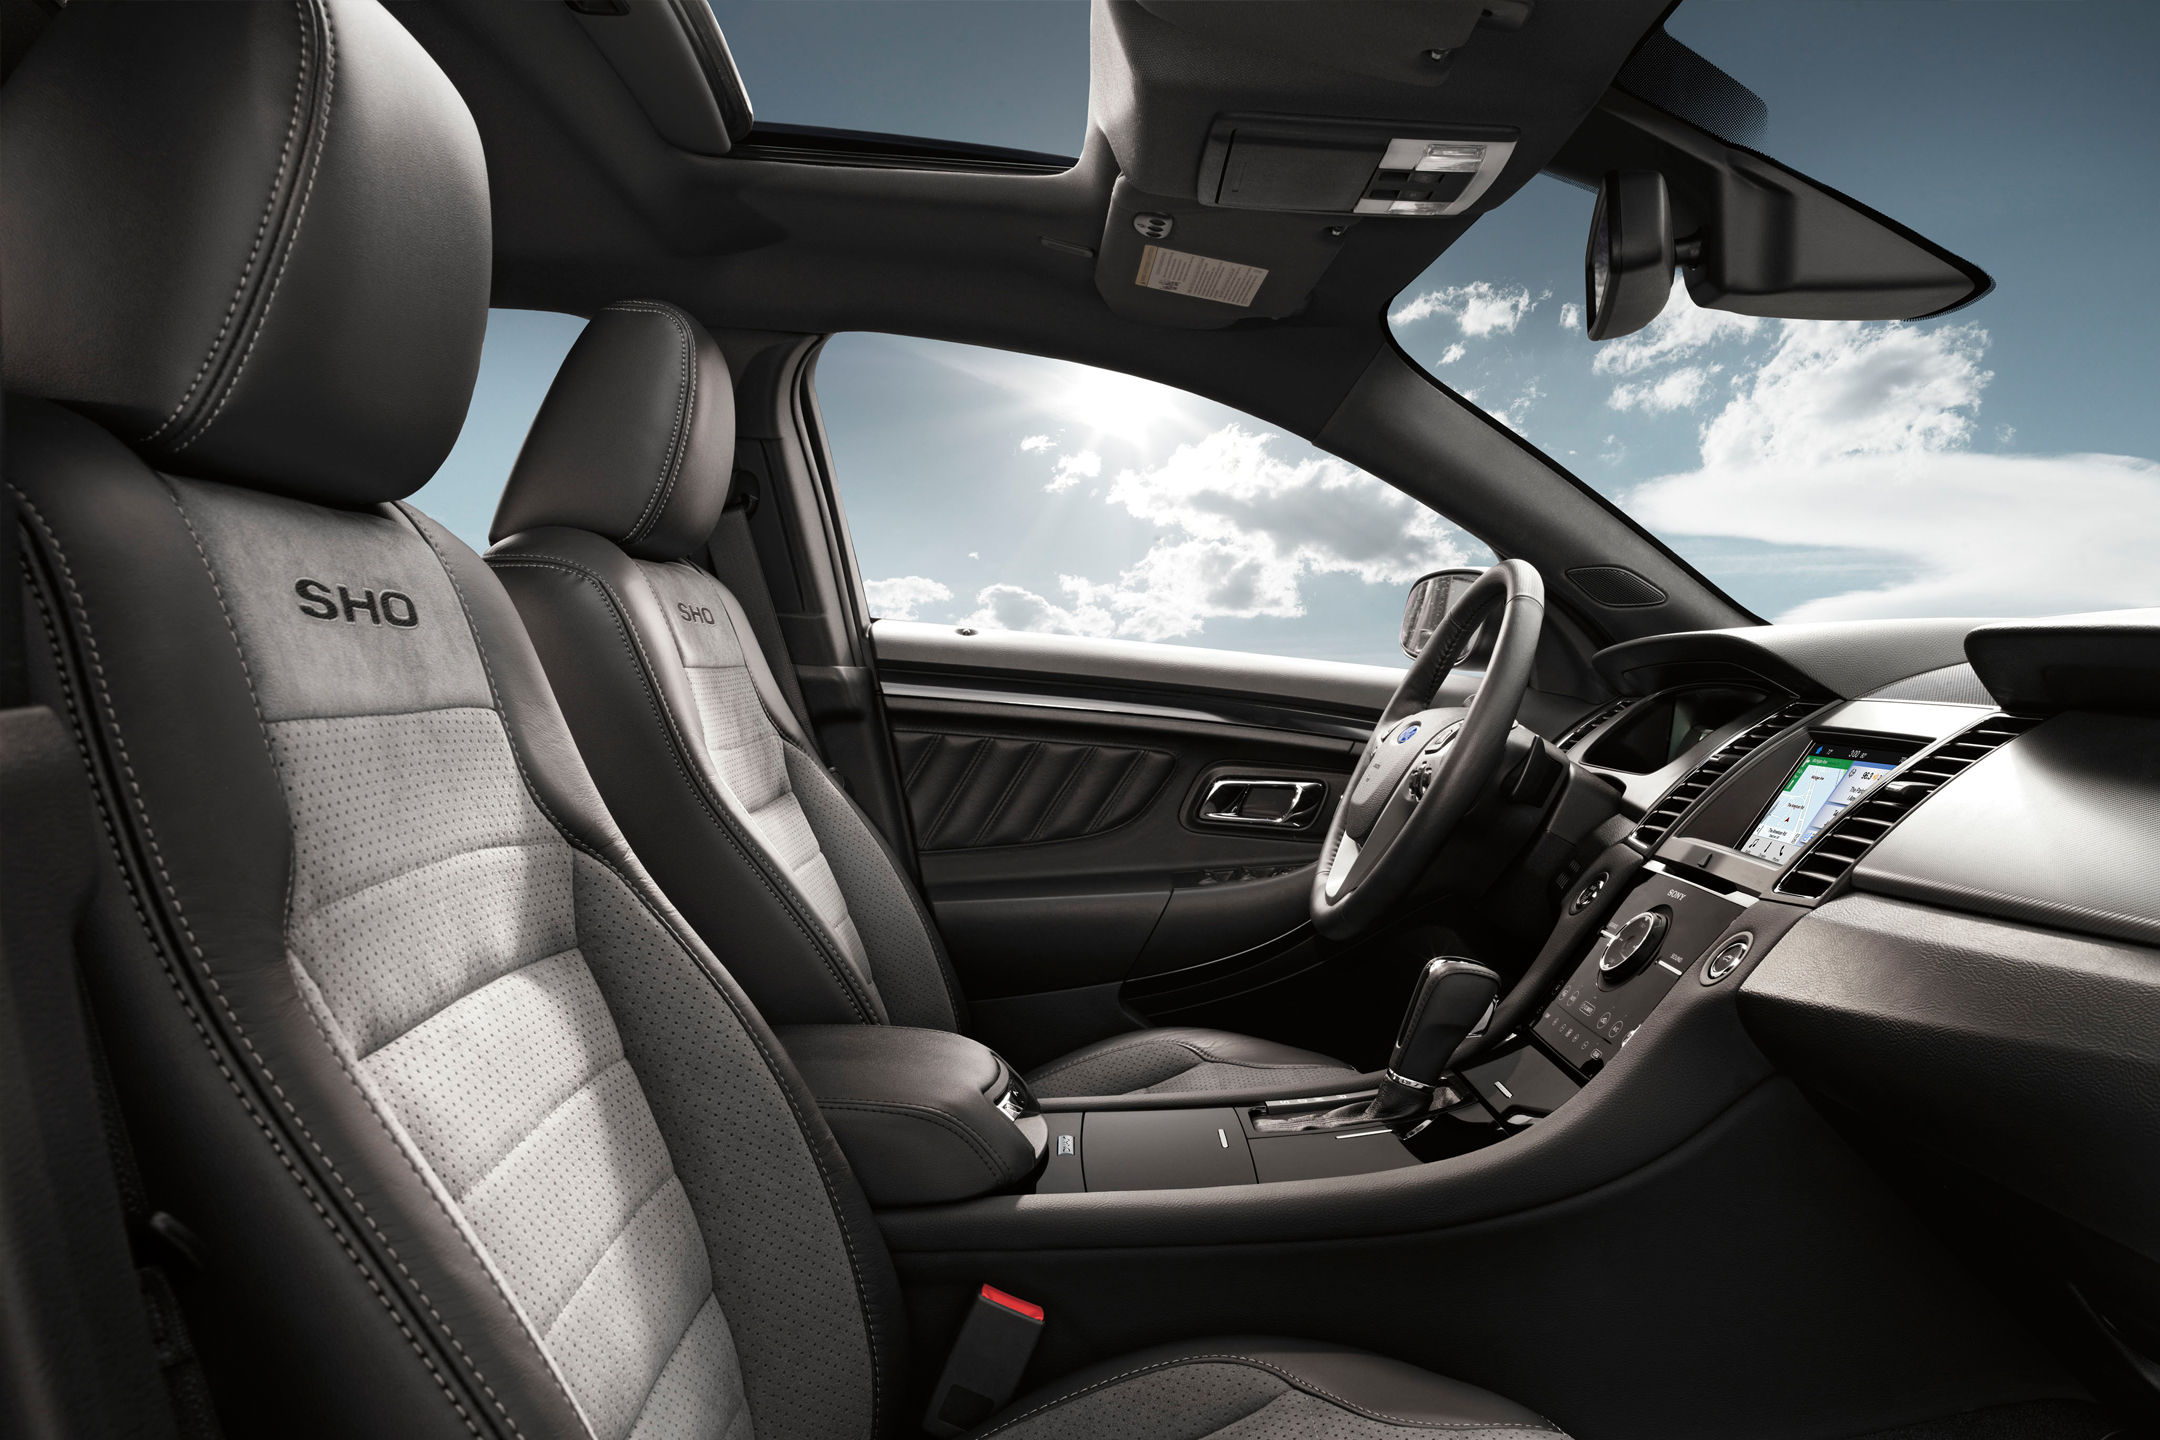 2017 Ford Taurus Overview The News Wheel